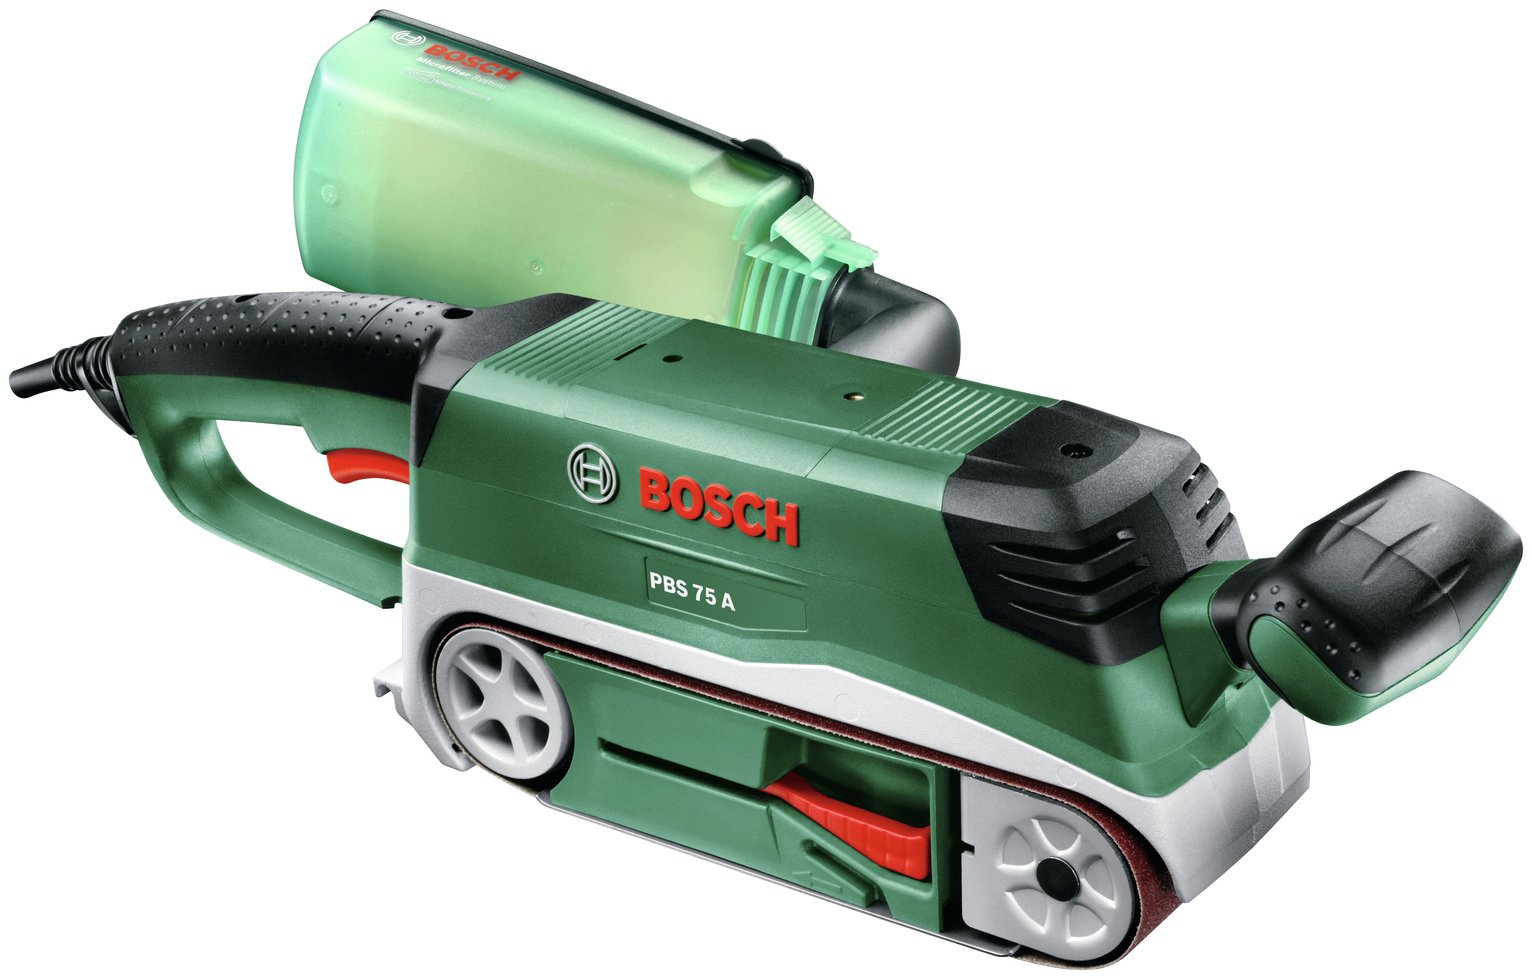 Bosch PBS75A Corded Belt Sander - 710W